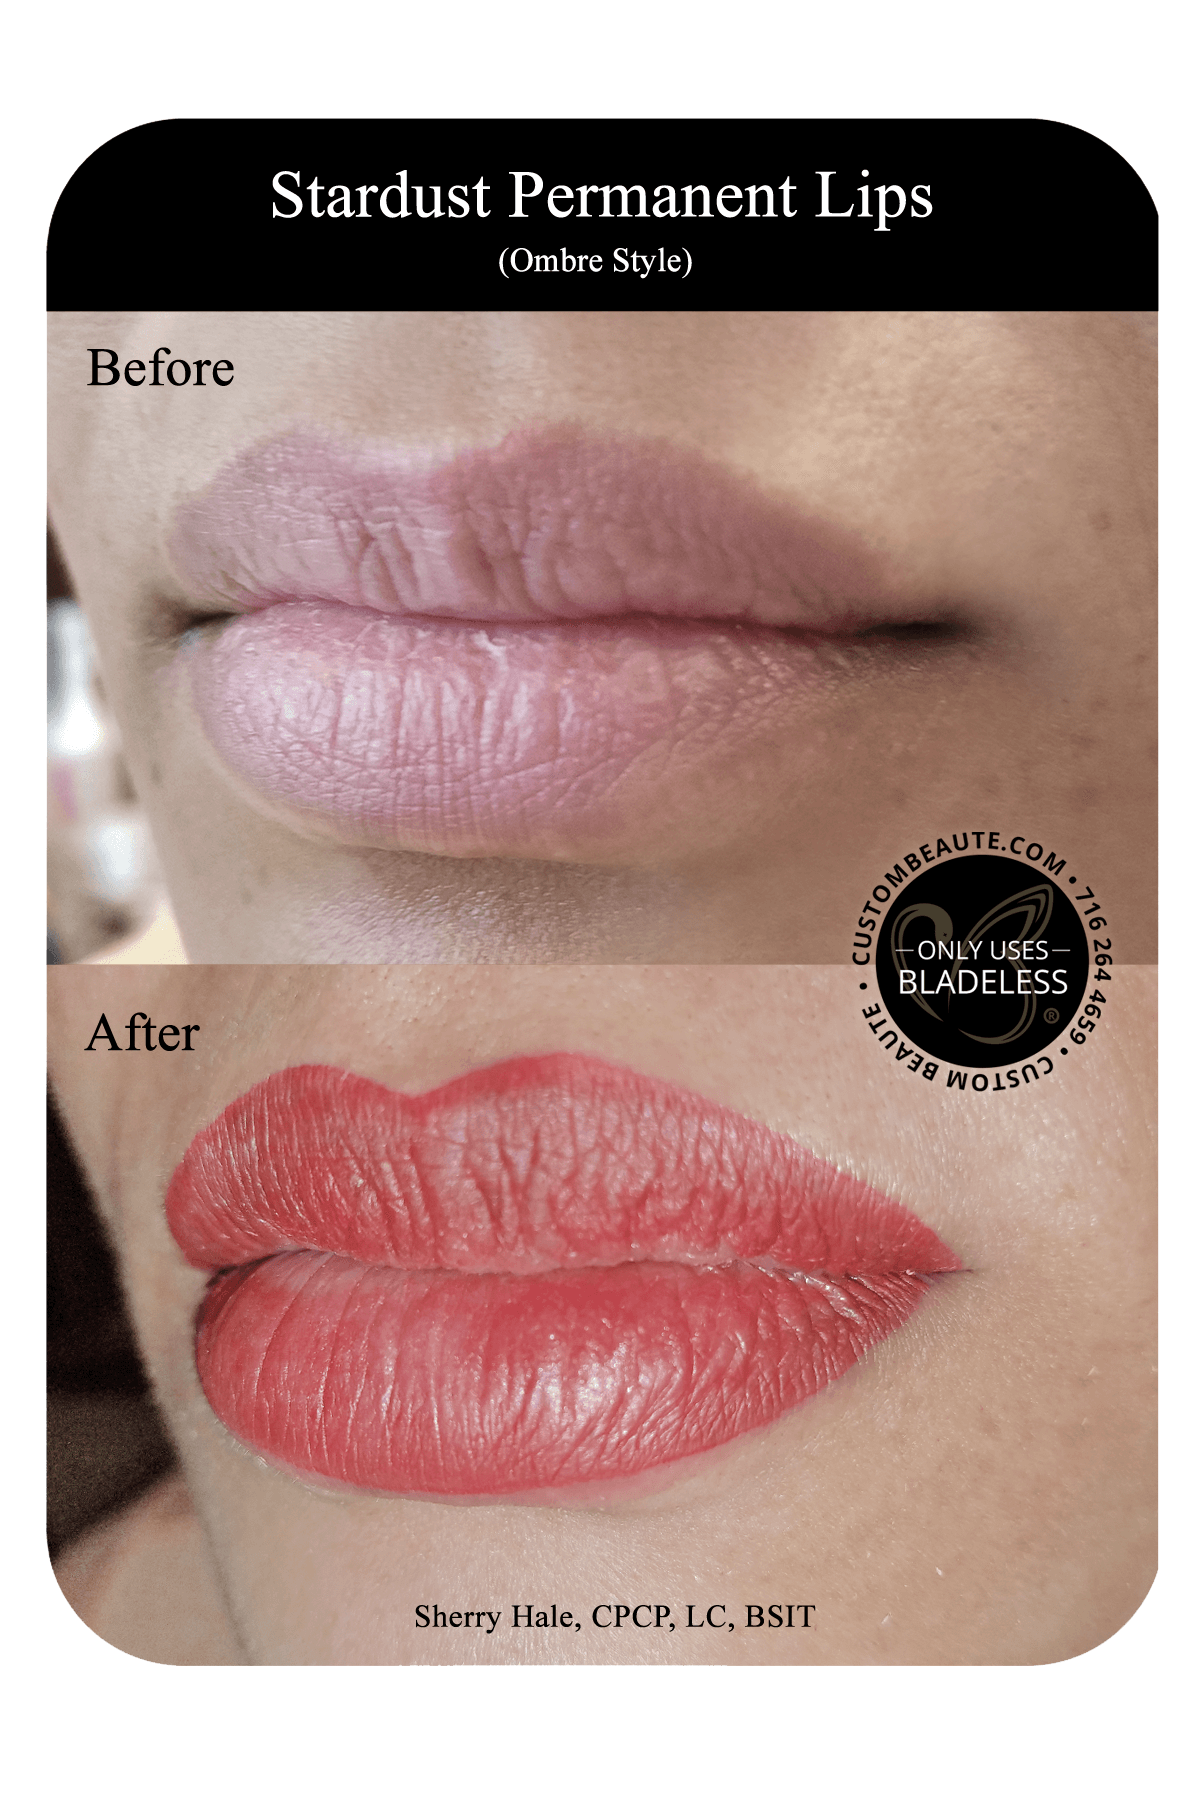 Permanent Lips in Amherst, Buffalo and Western New York